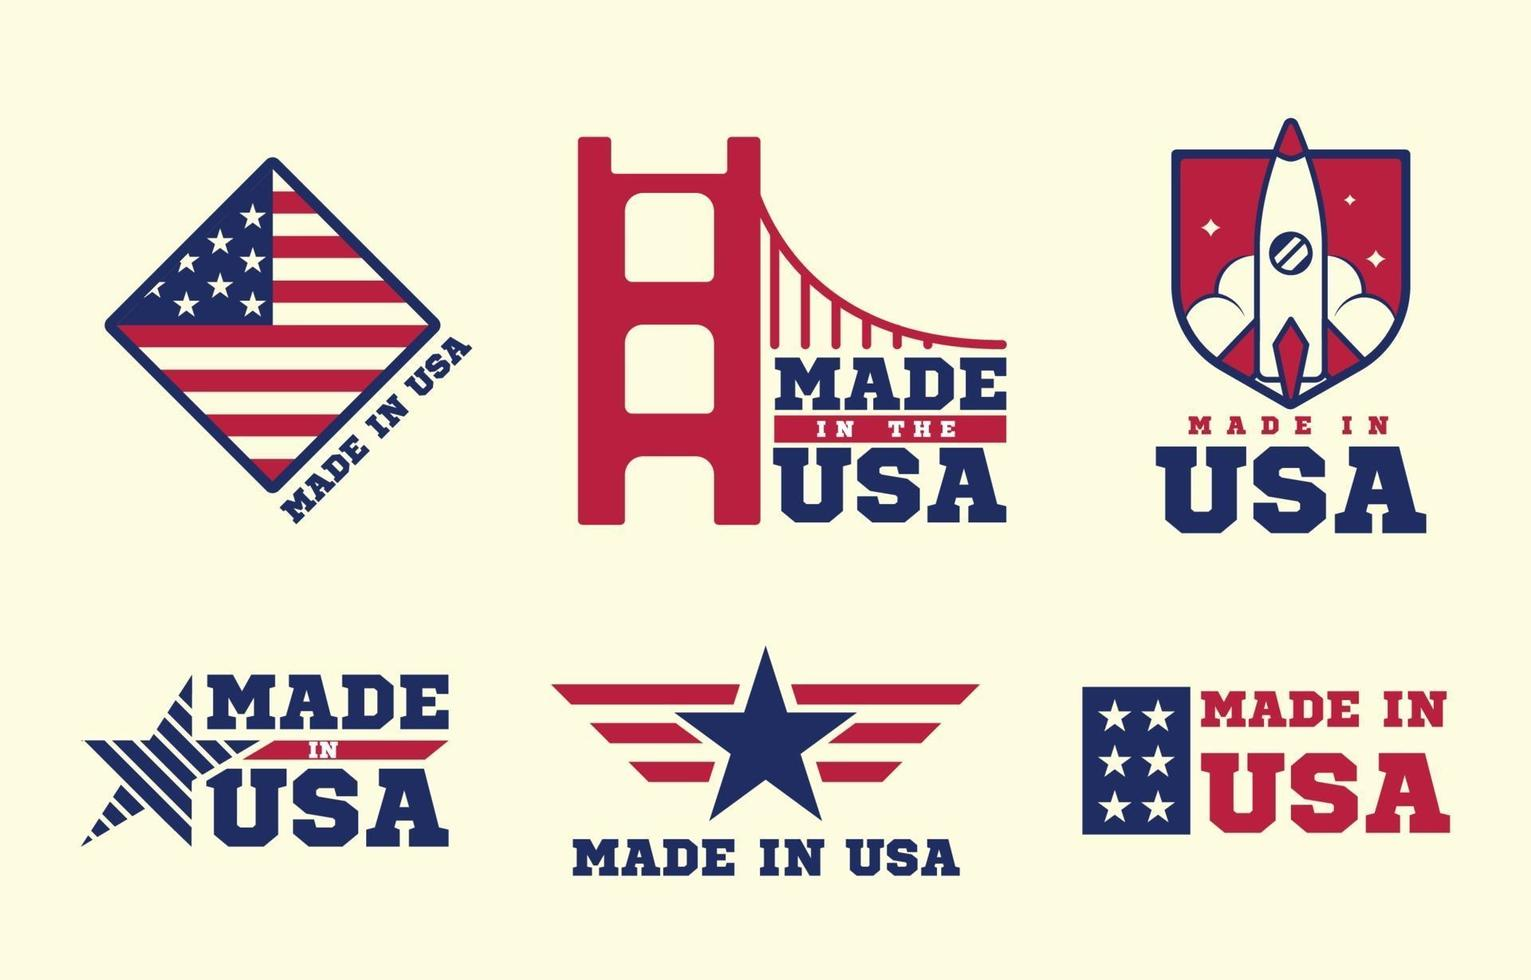 badges made in usa vecteur